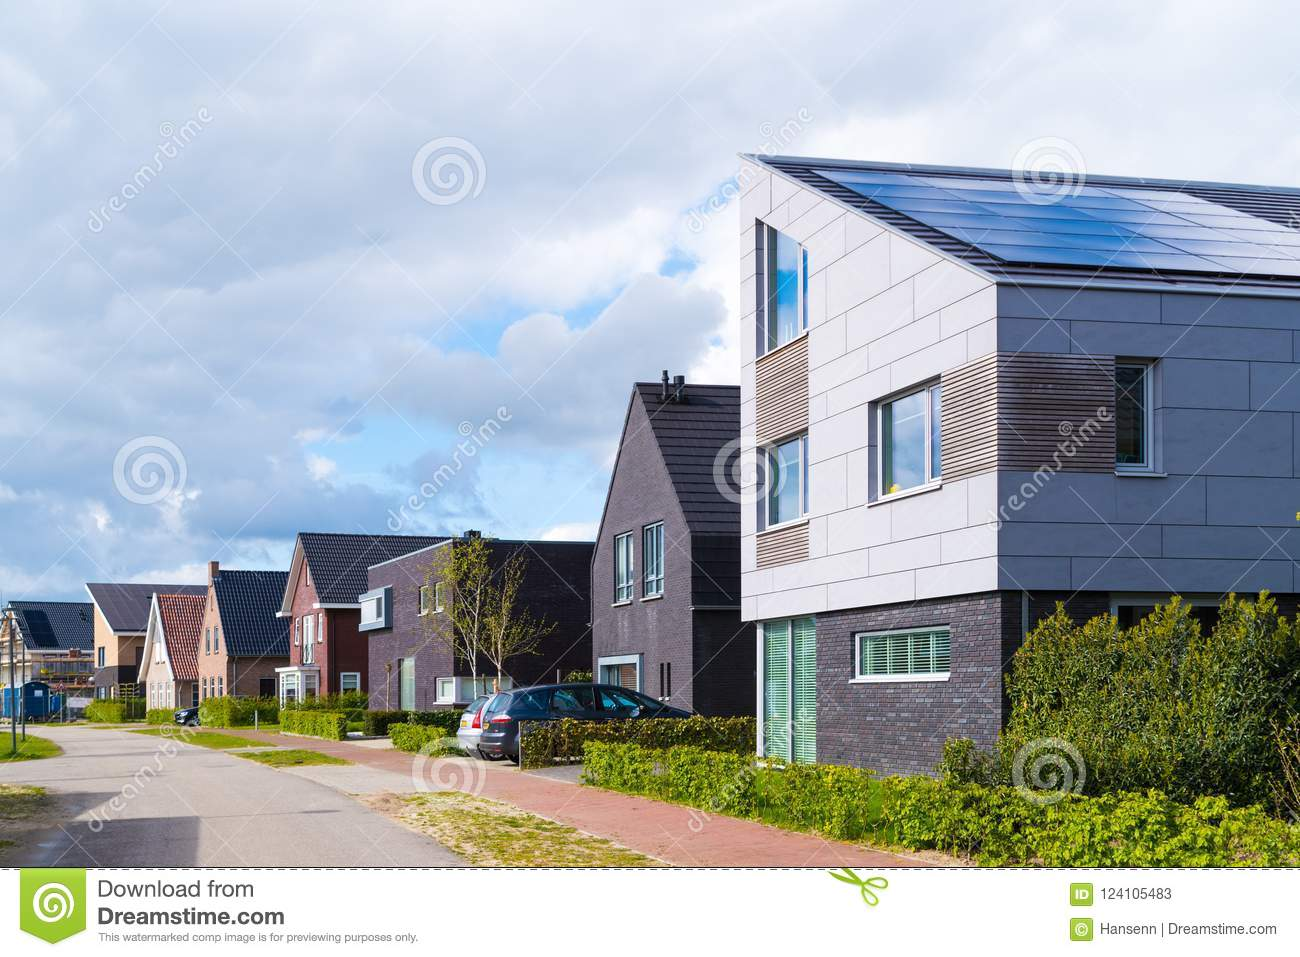 Borne netherlands april 23 2017 street with modern residential houses in the netherlands